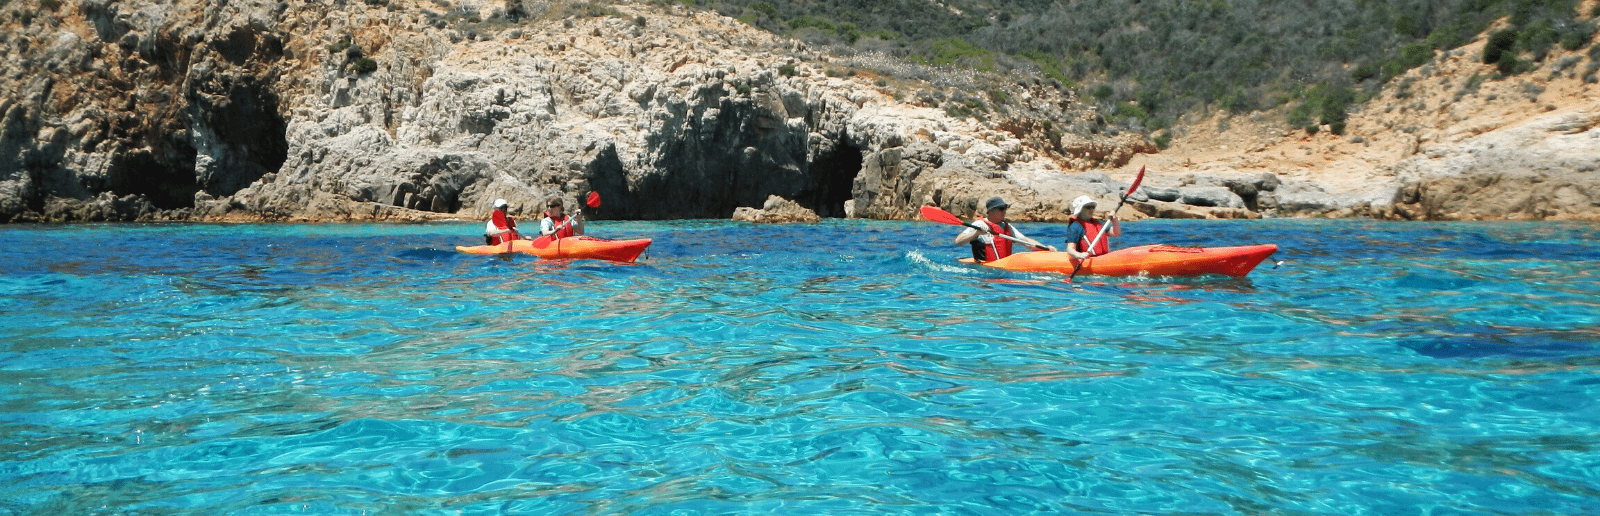 Kayak Tour in Sardinia